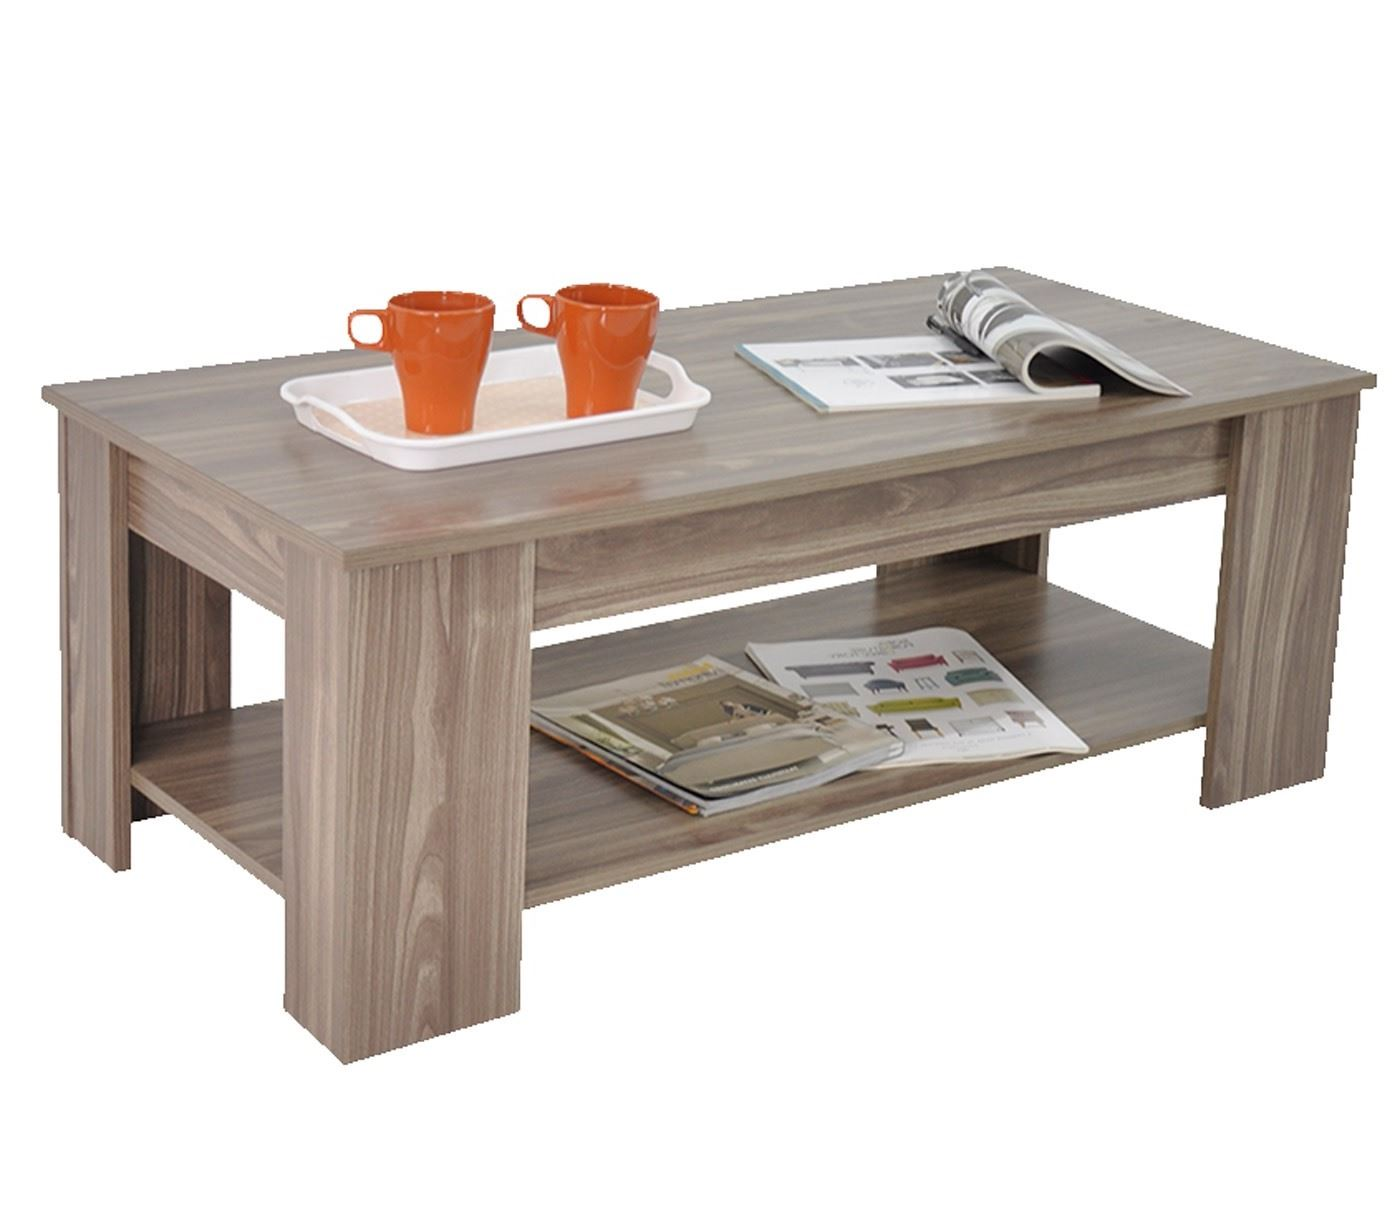 Raise Up Coffee Table Stephanie Storage Large Solid Lift Up Coffee Table Walnut